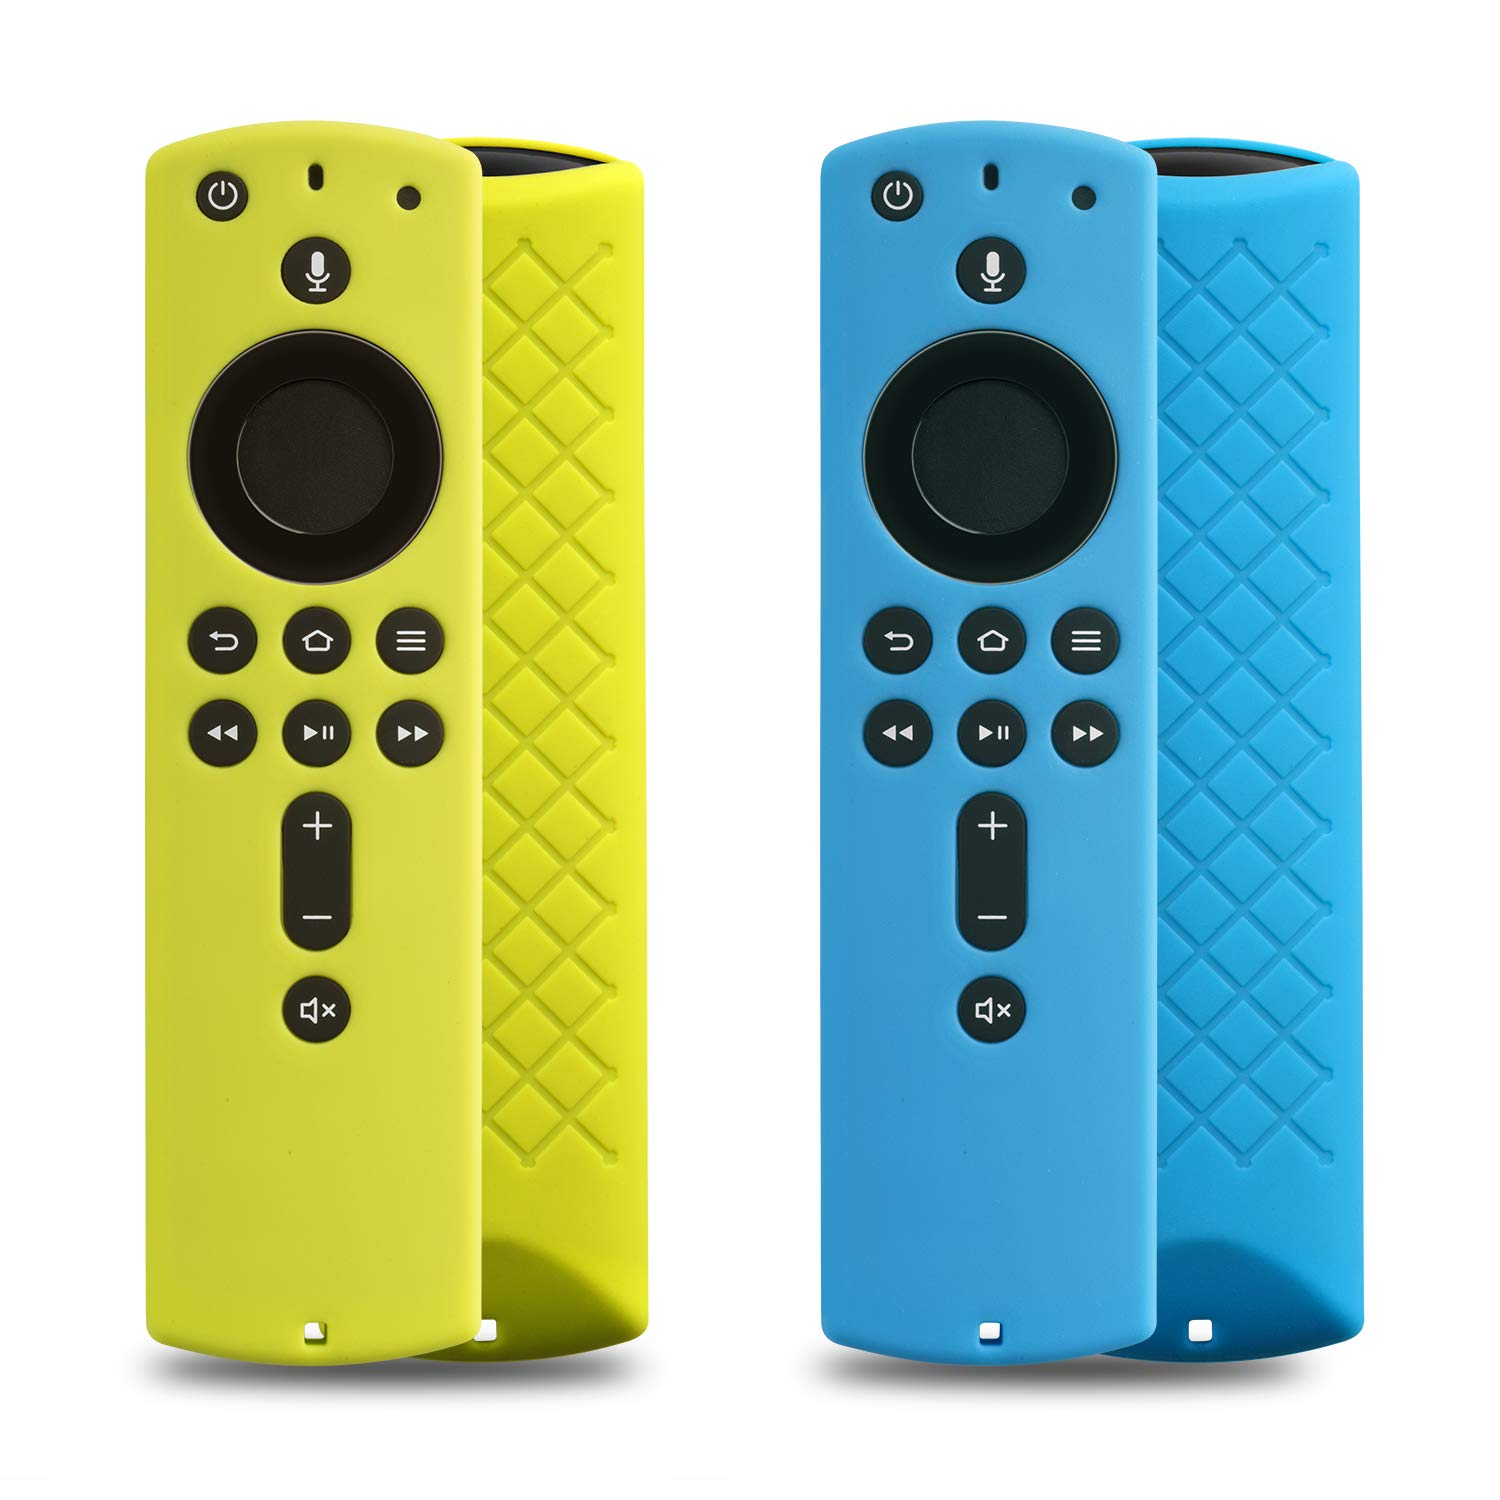 [2 Pack] Cover for Fire Stick Remote - Case for 2nd Gen Alexa Voice Remote (Blue and Chartreuse)